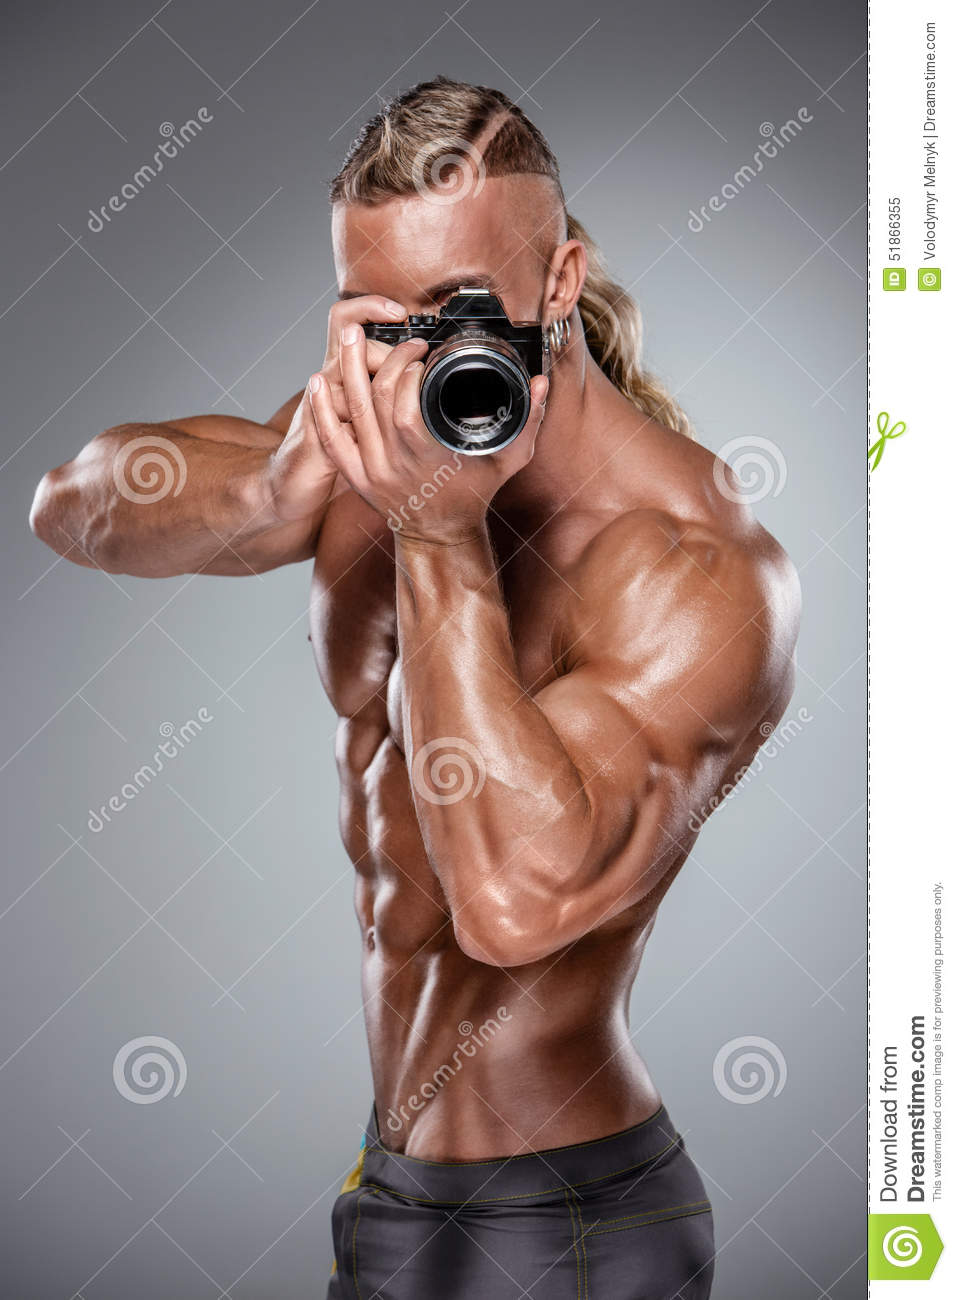 Download Attractive Male Body Builder On White Background Stock Image - Image of camera, photo: 51866355